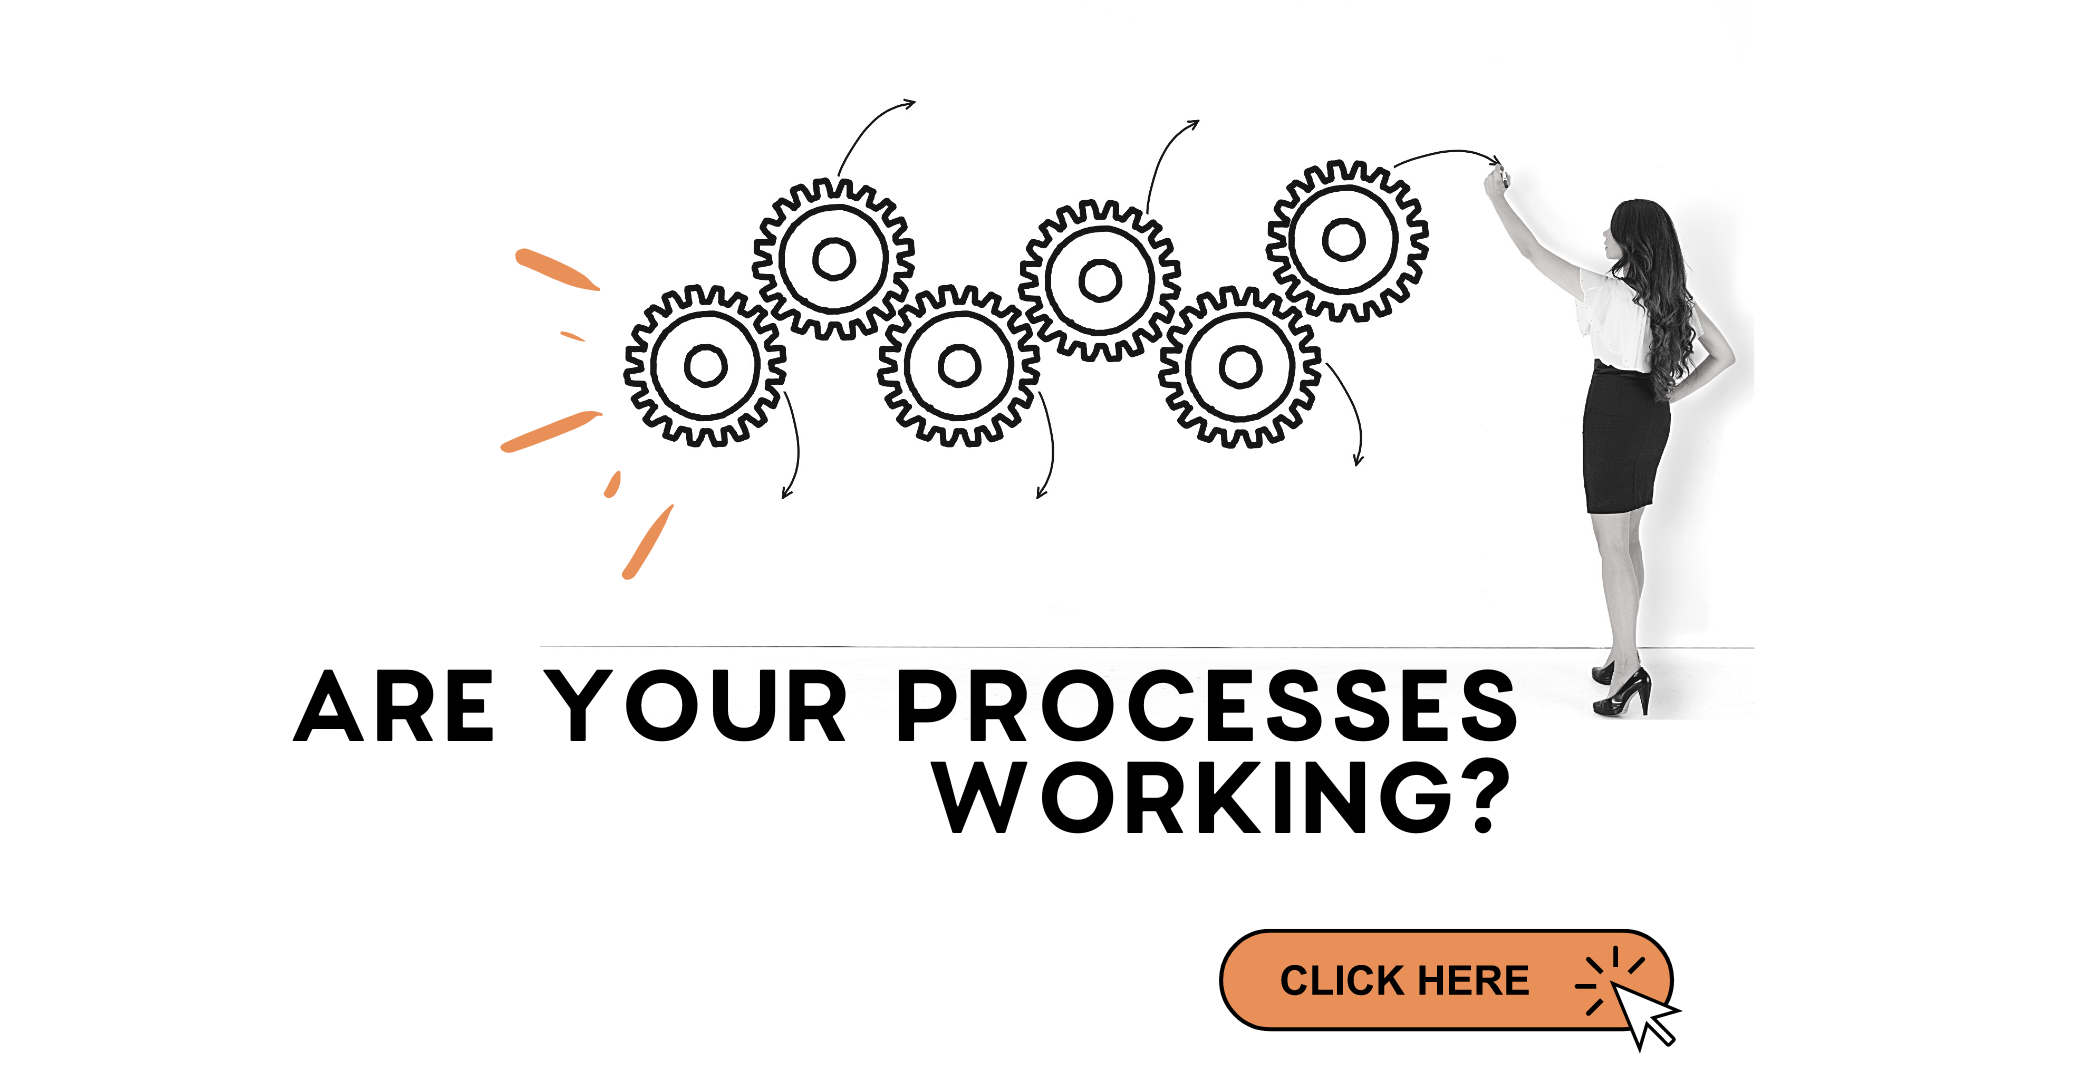 Are Your Processes Working?